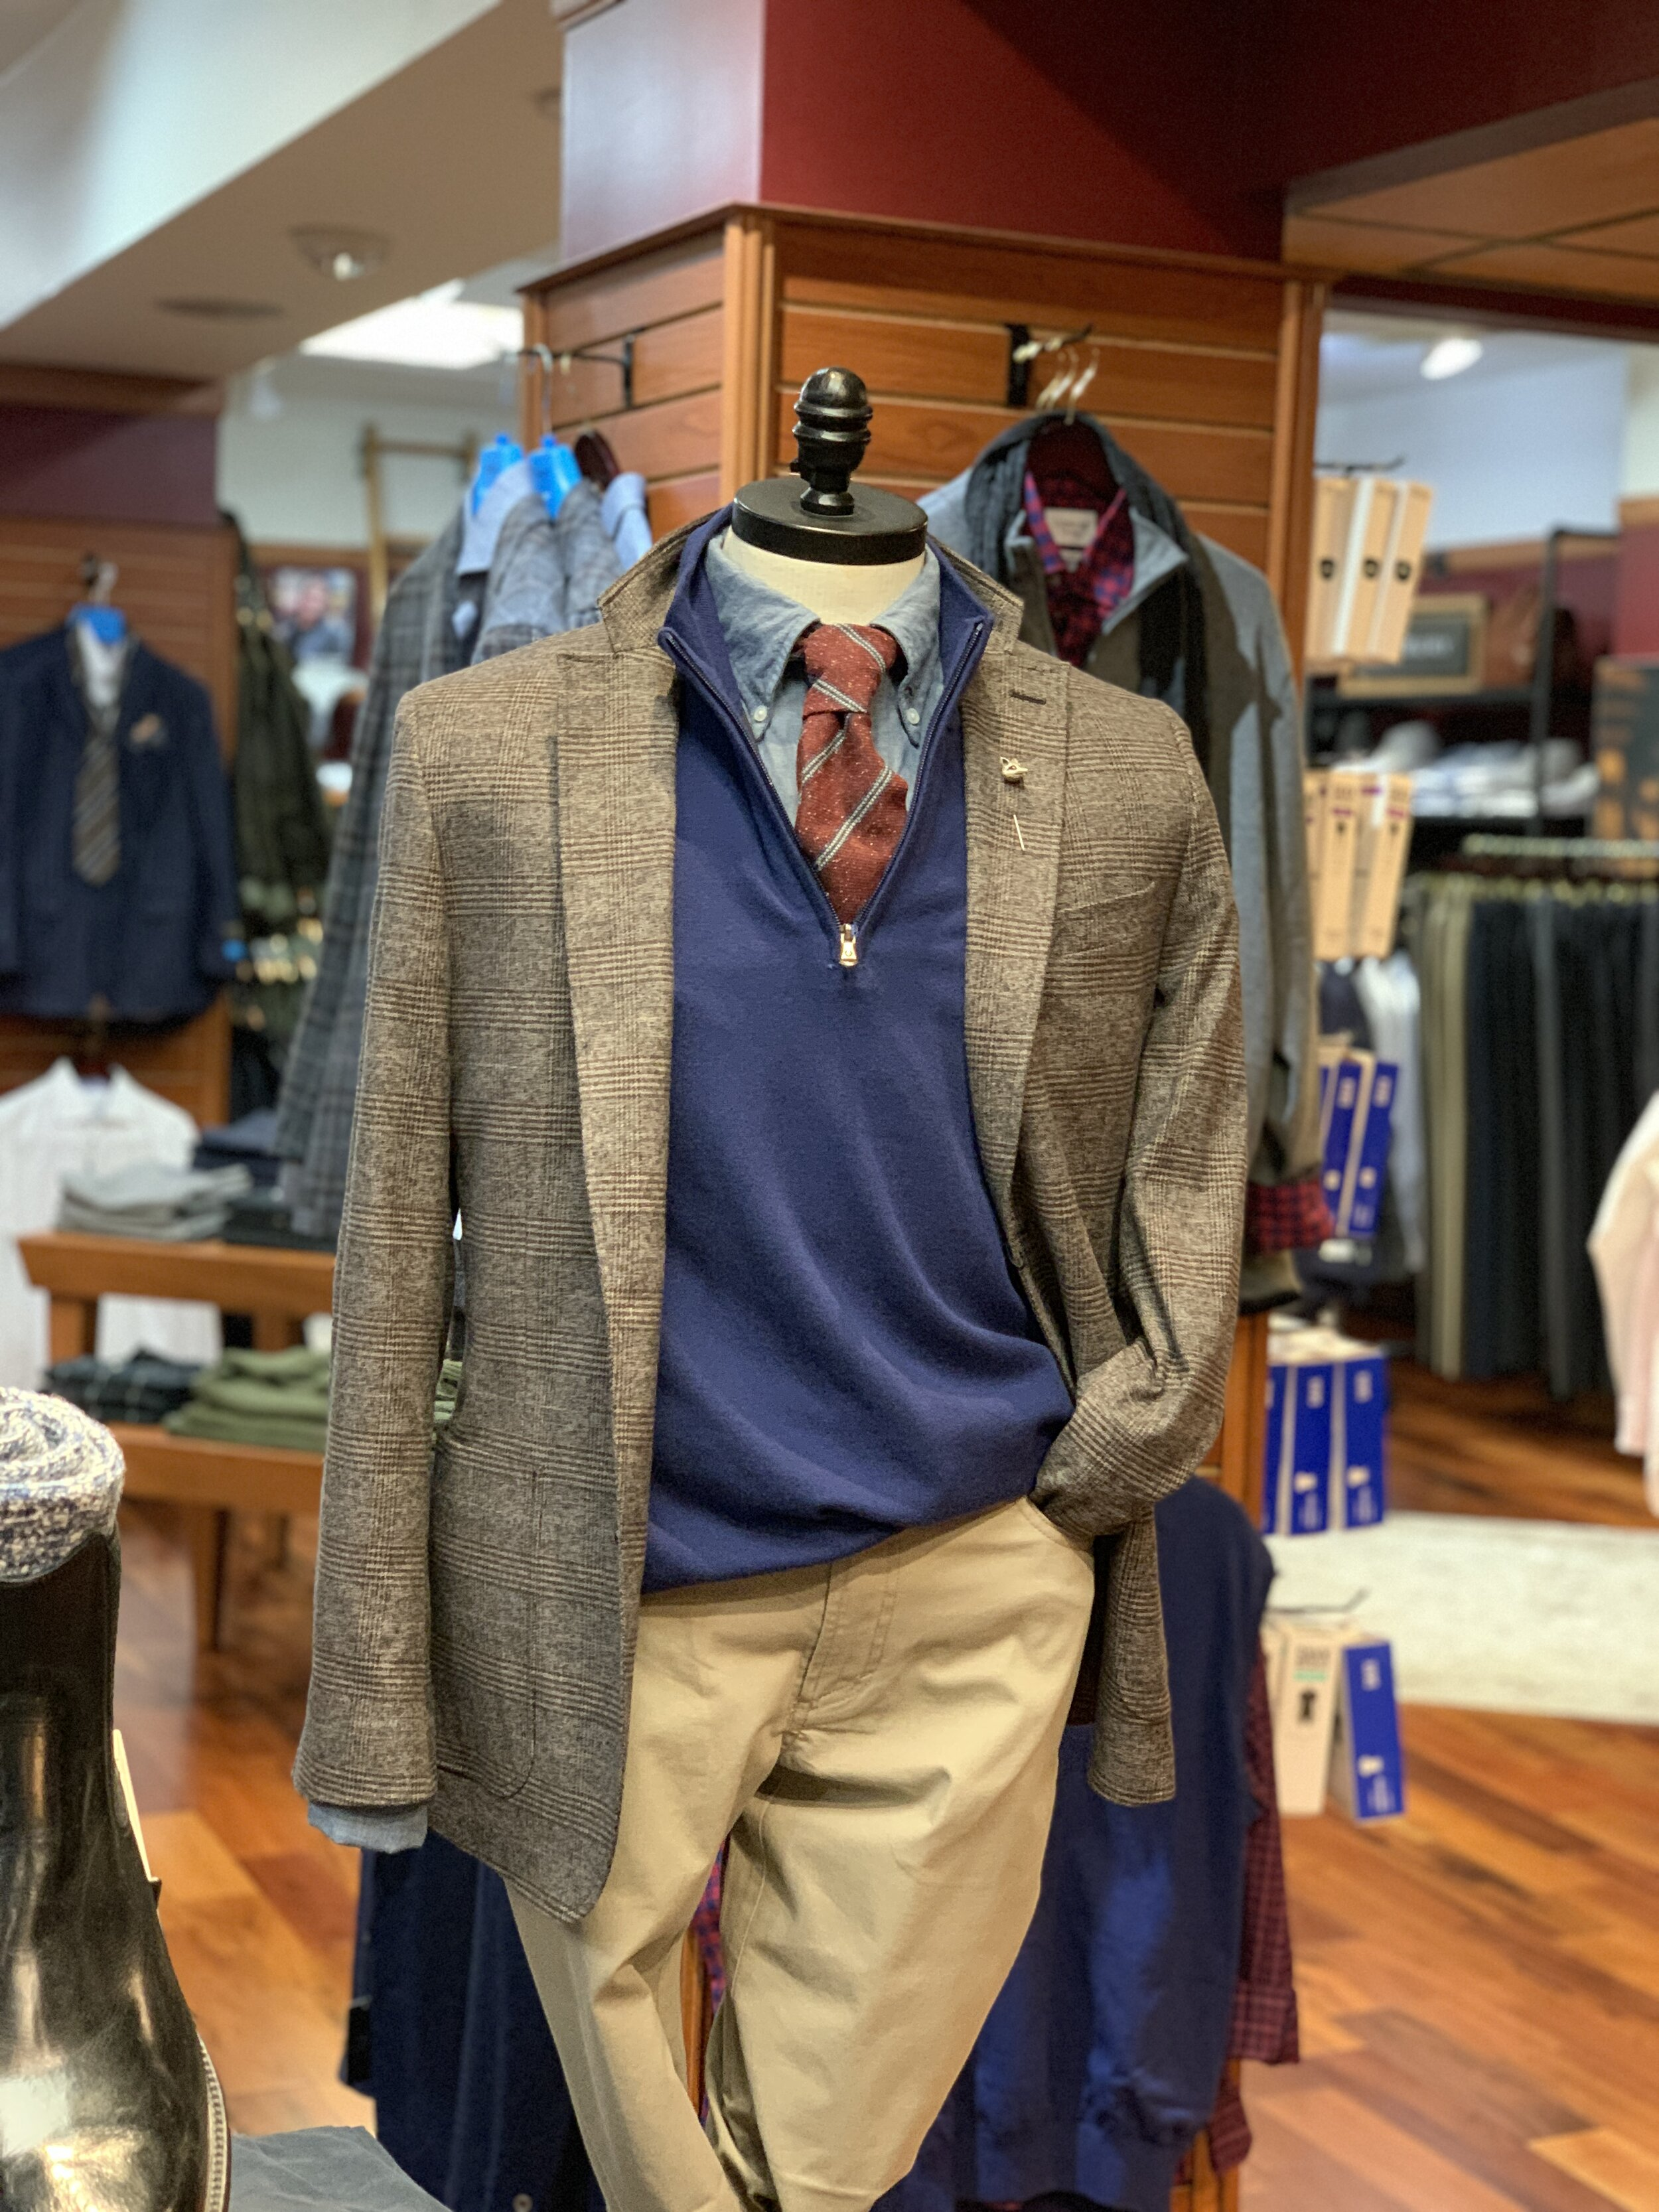 PB Sportcoat, Mizzen & Main Pullover, Duck Head Chinos, Drake's Button Down Shirt, QG Neckwear